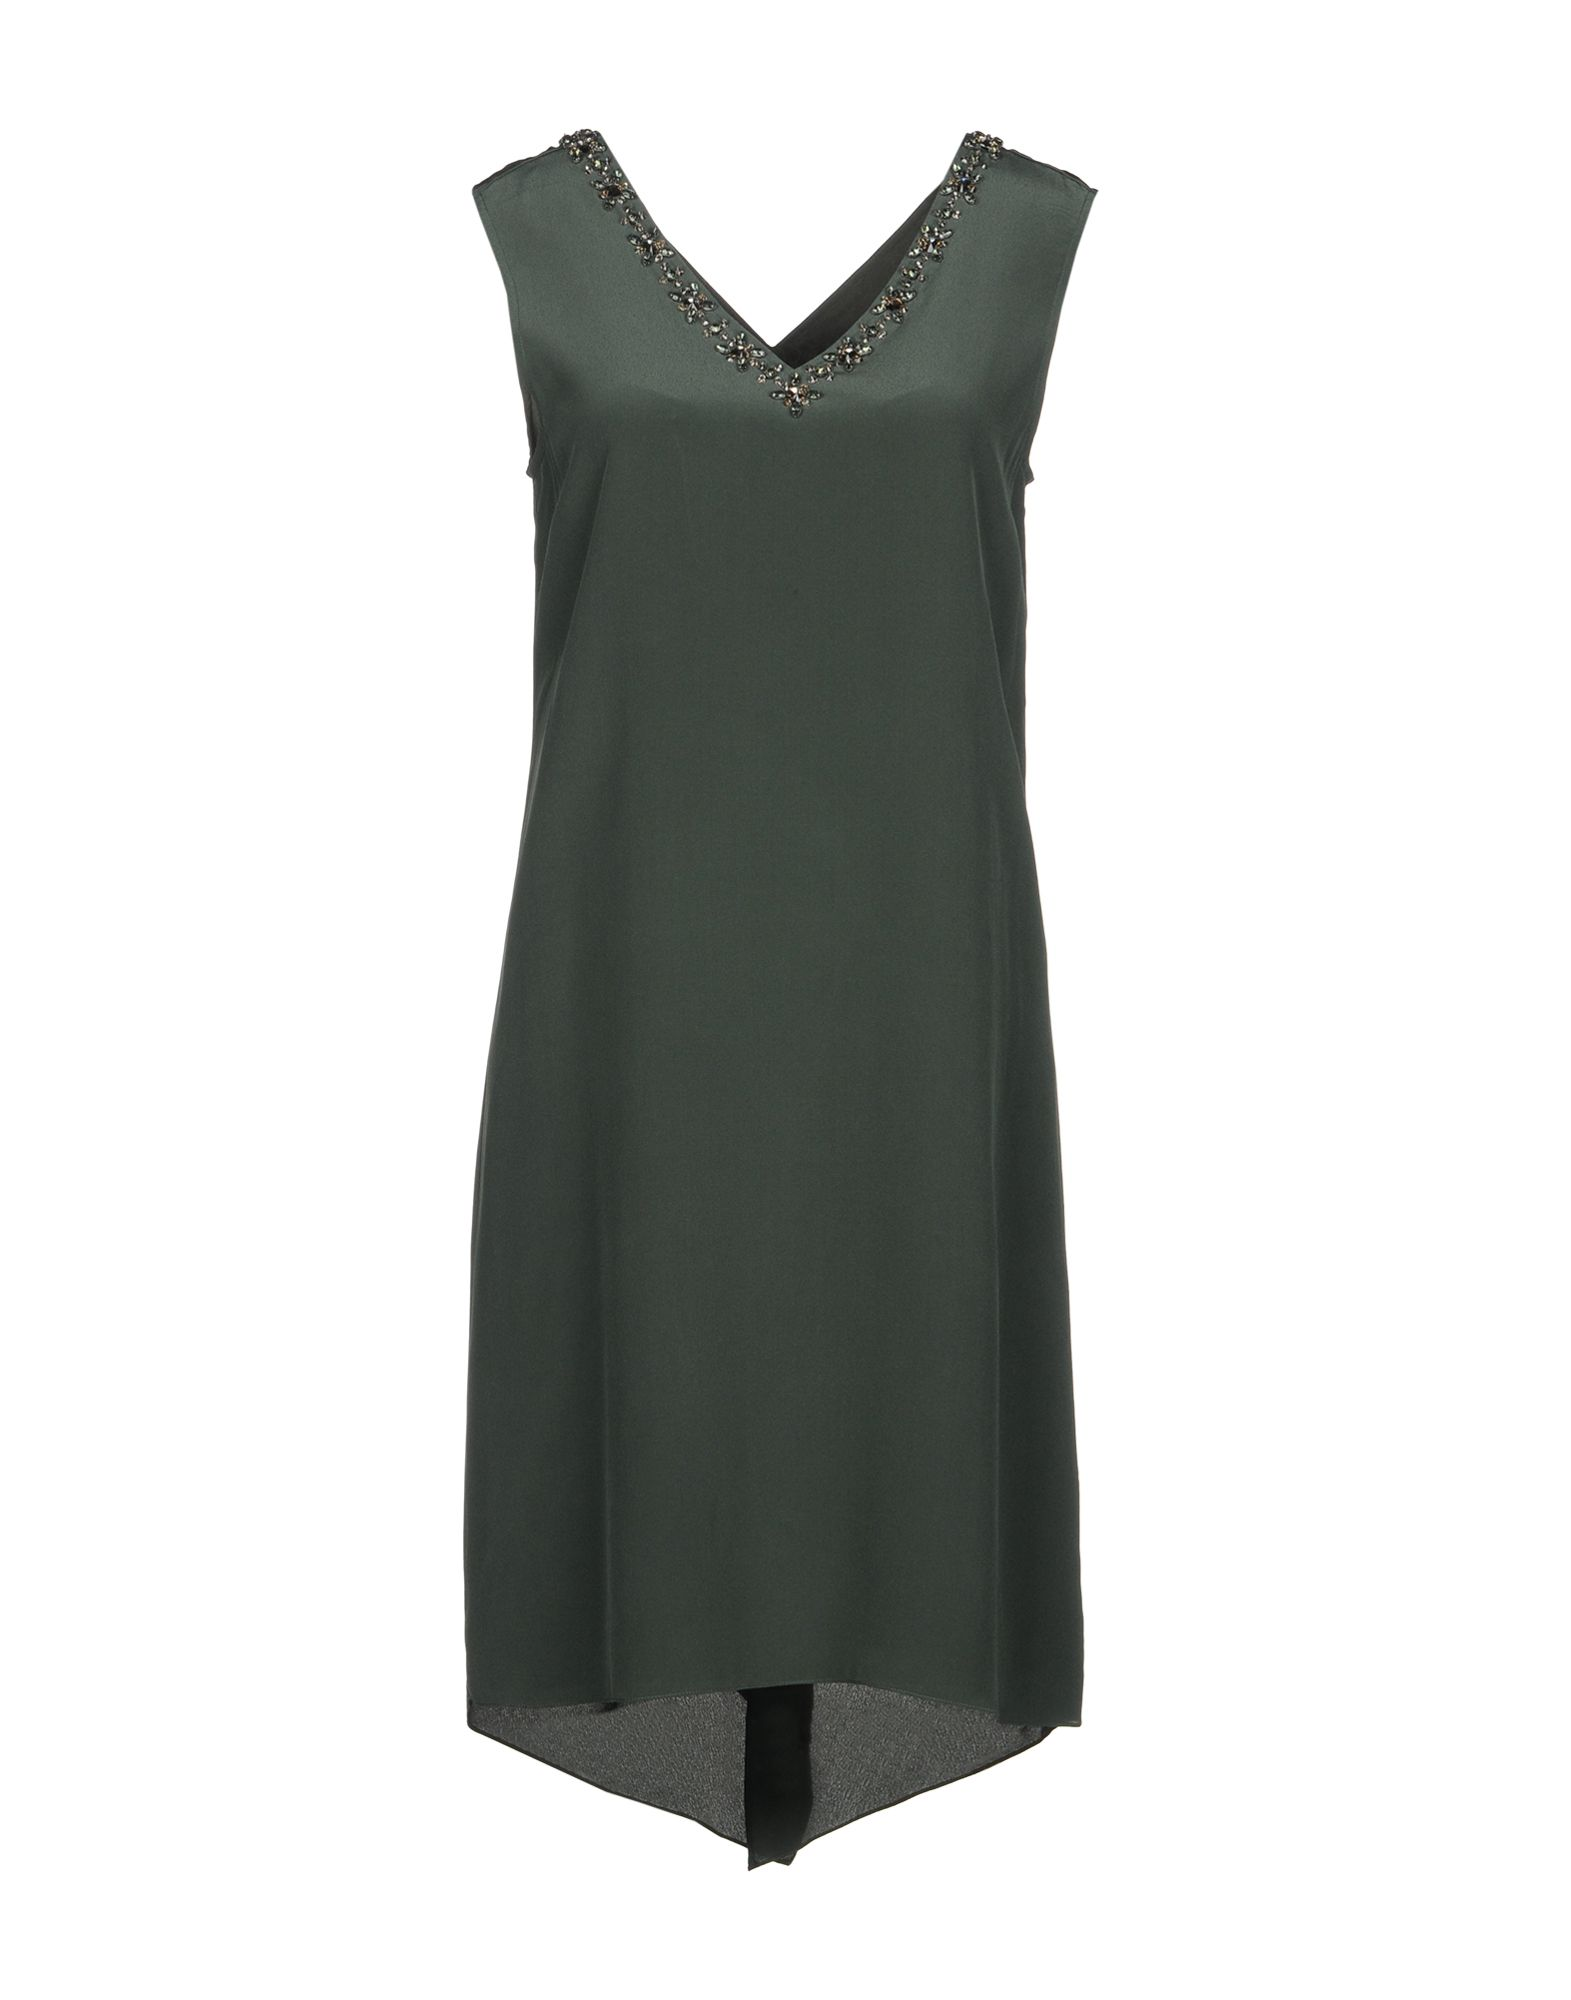 MAGASCHONI Short Dress in Military Green